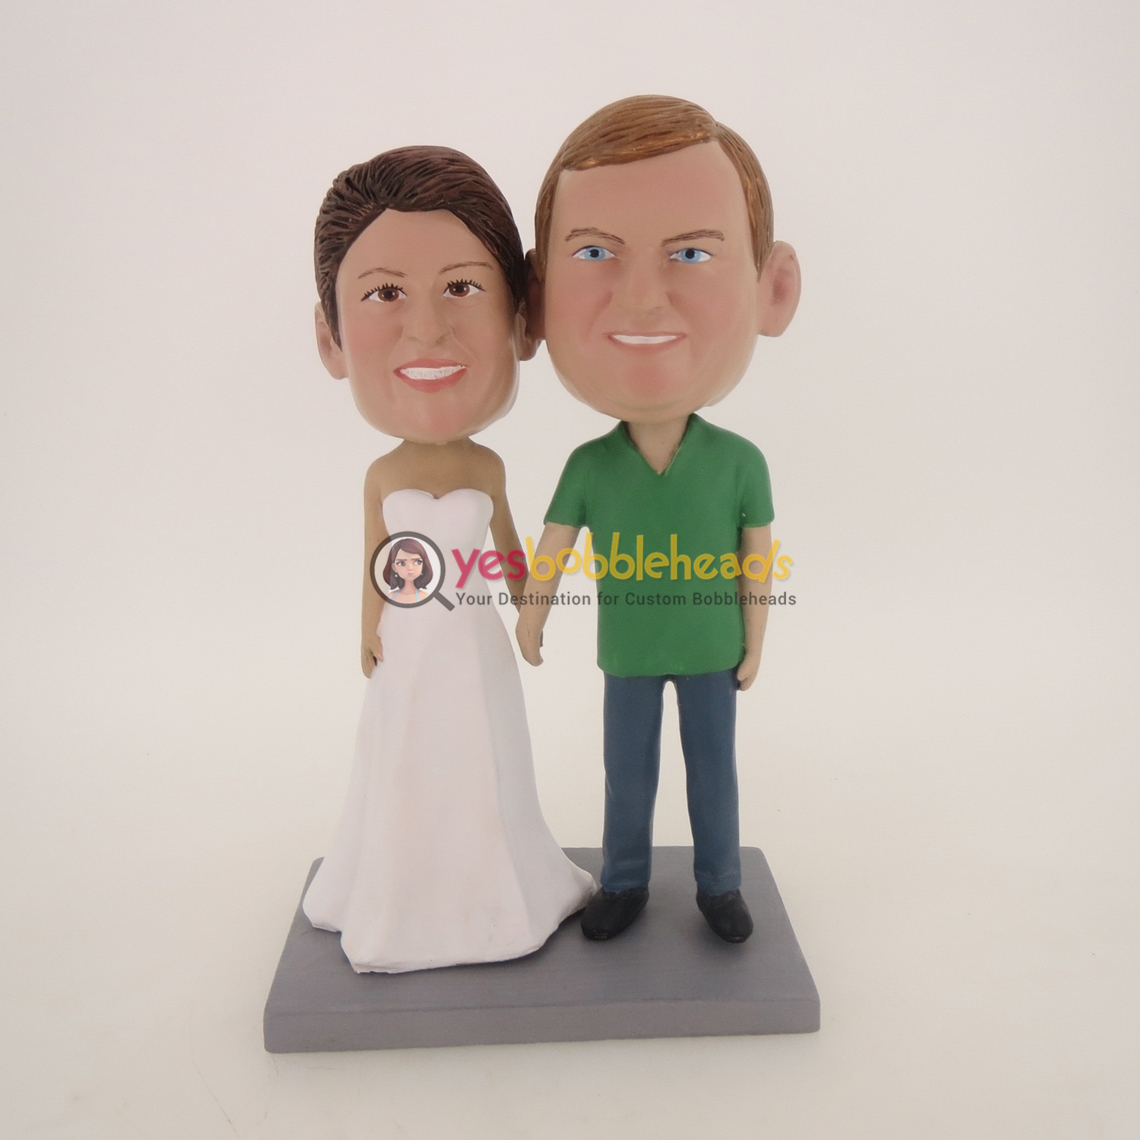 Picture of Custom Bobblehead Doll: Hand In Hand White Dress Bride Couple